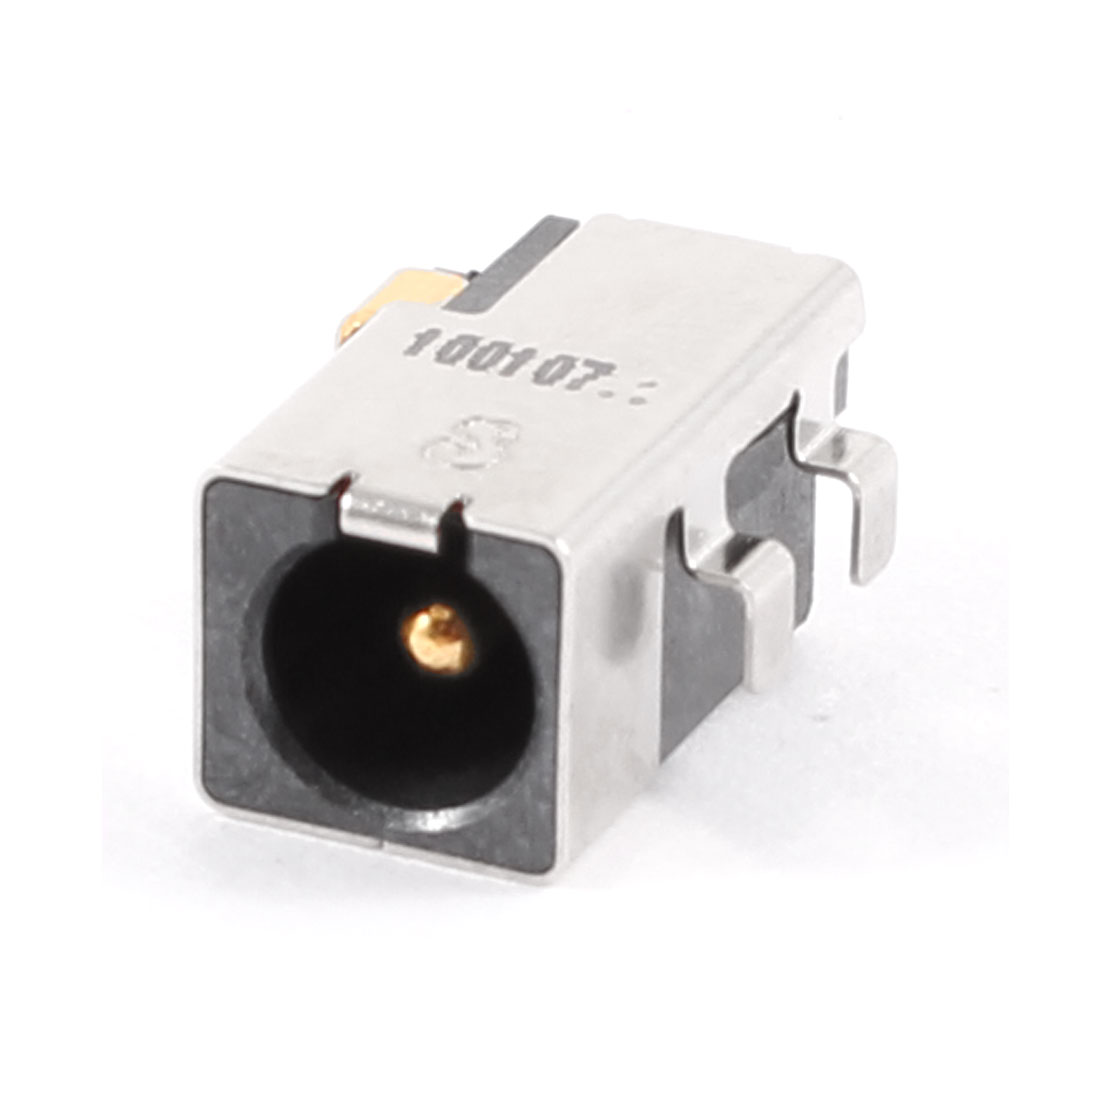 PJ006C DC Power Jack Connector Socket for ASUS EEE PC MK90 Series